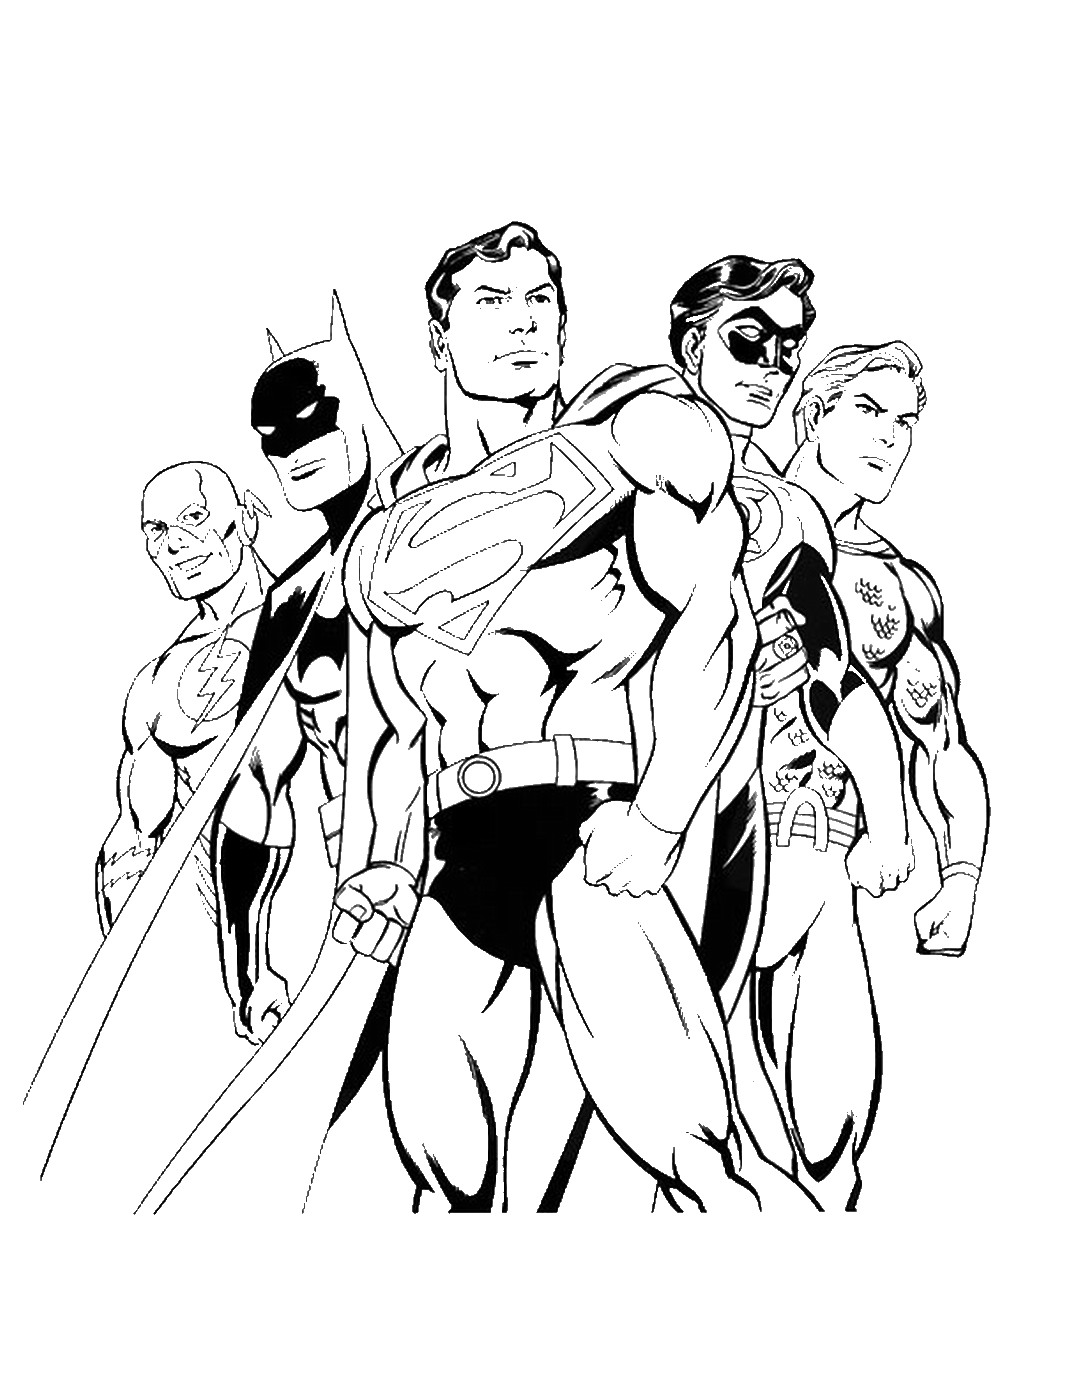 coloring sheet superman coloring pages clipart panda free clipart images superman coloring coloring pages sheet